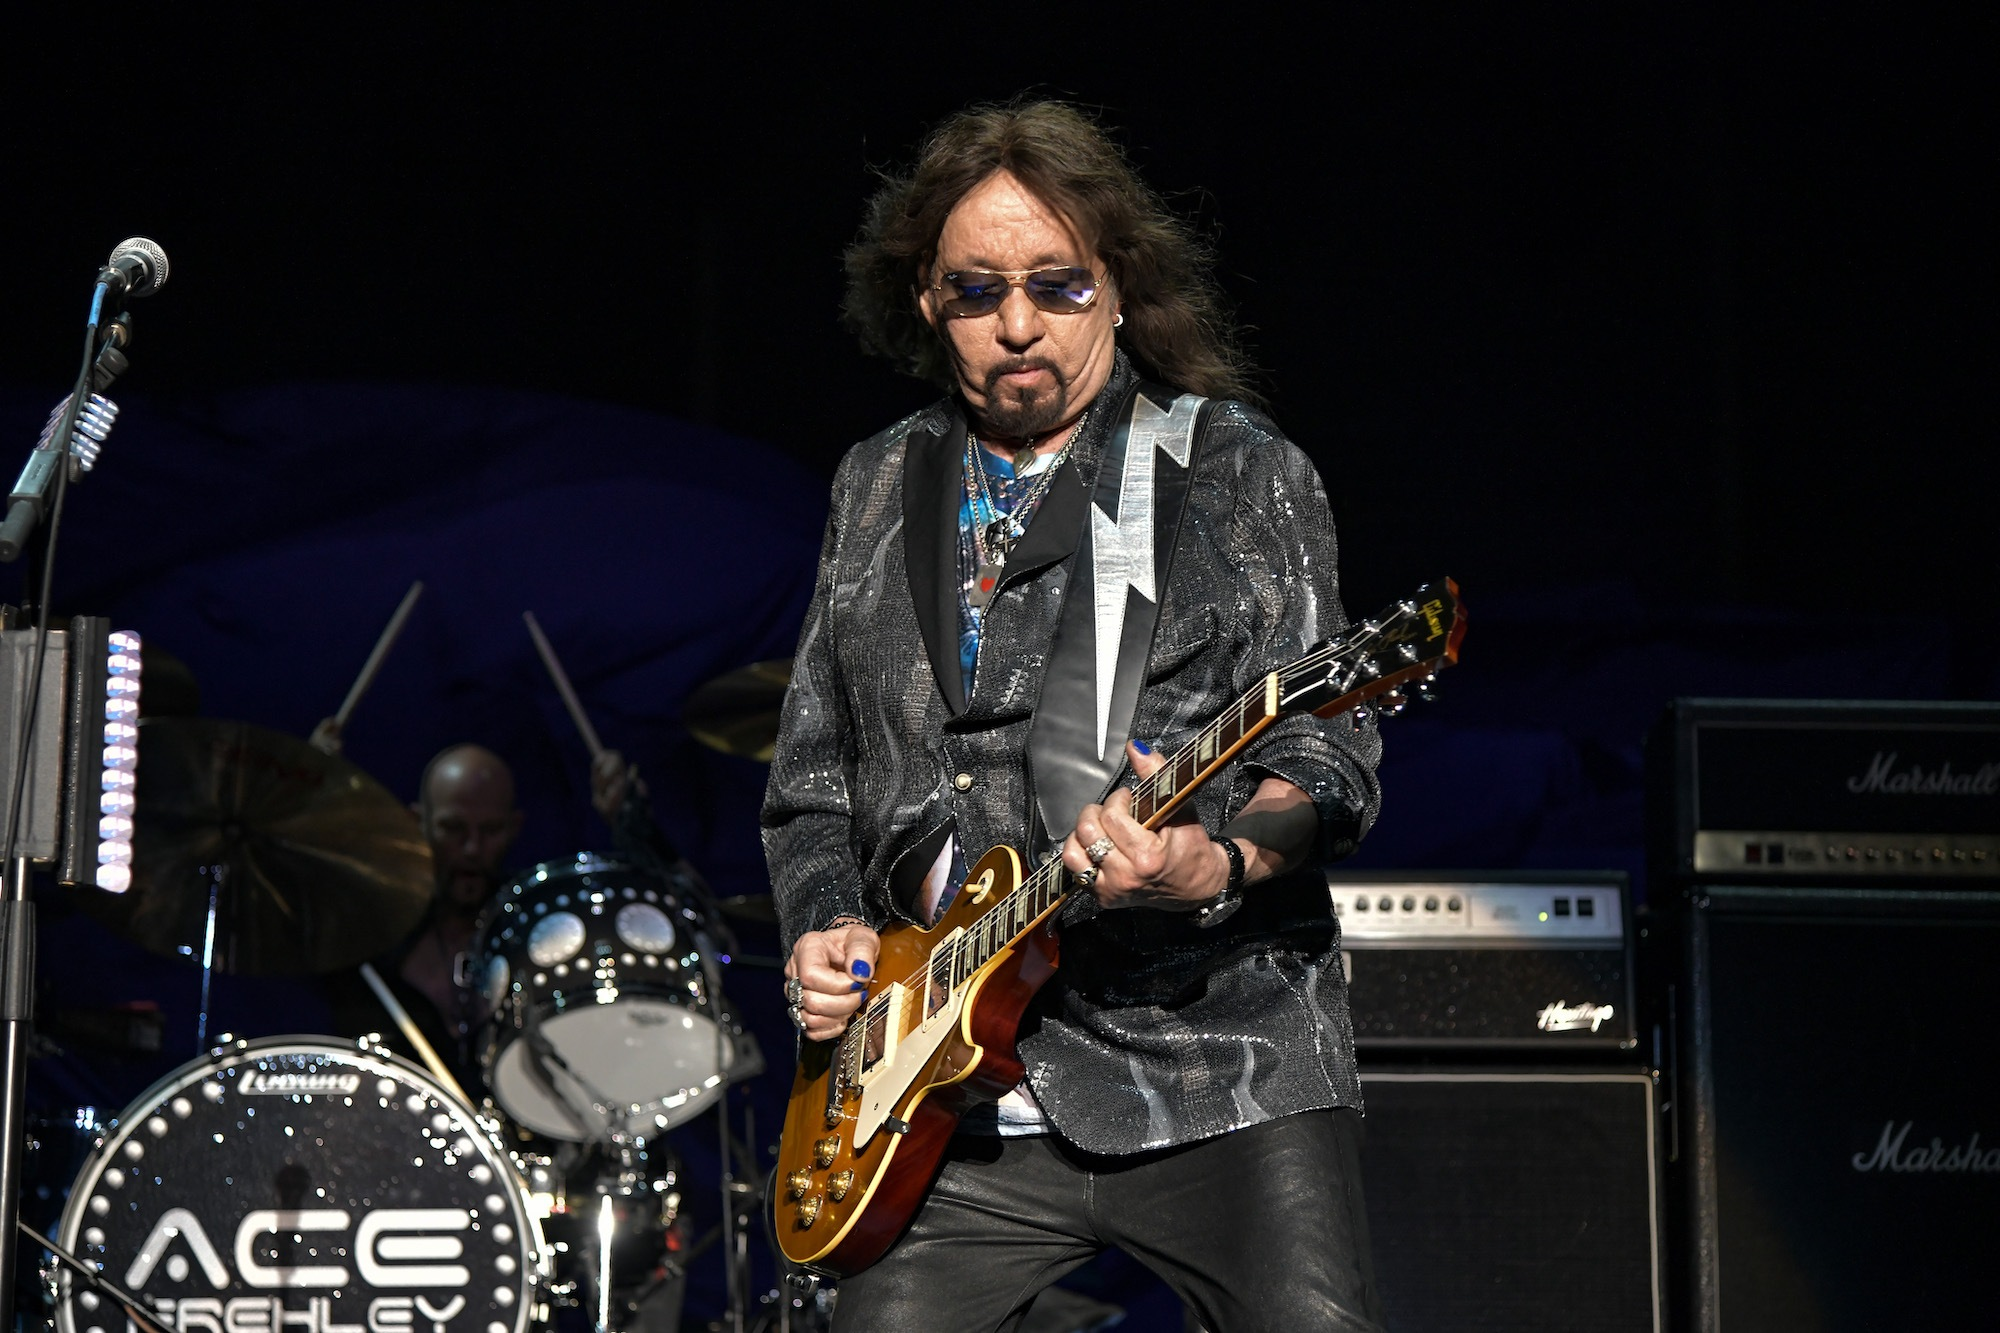 Ace Frehley Live at Huntington Bank Pavilion [GALLERY] 7